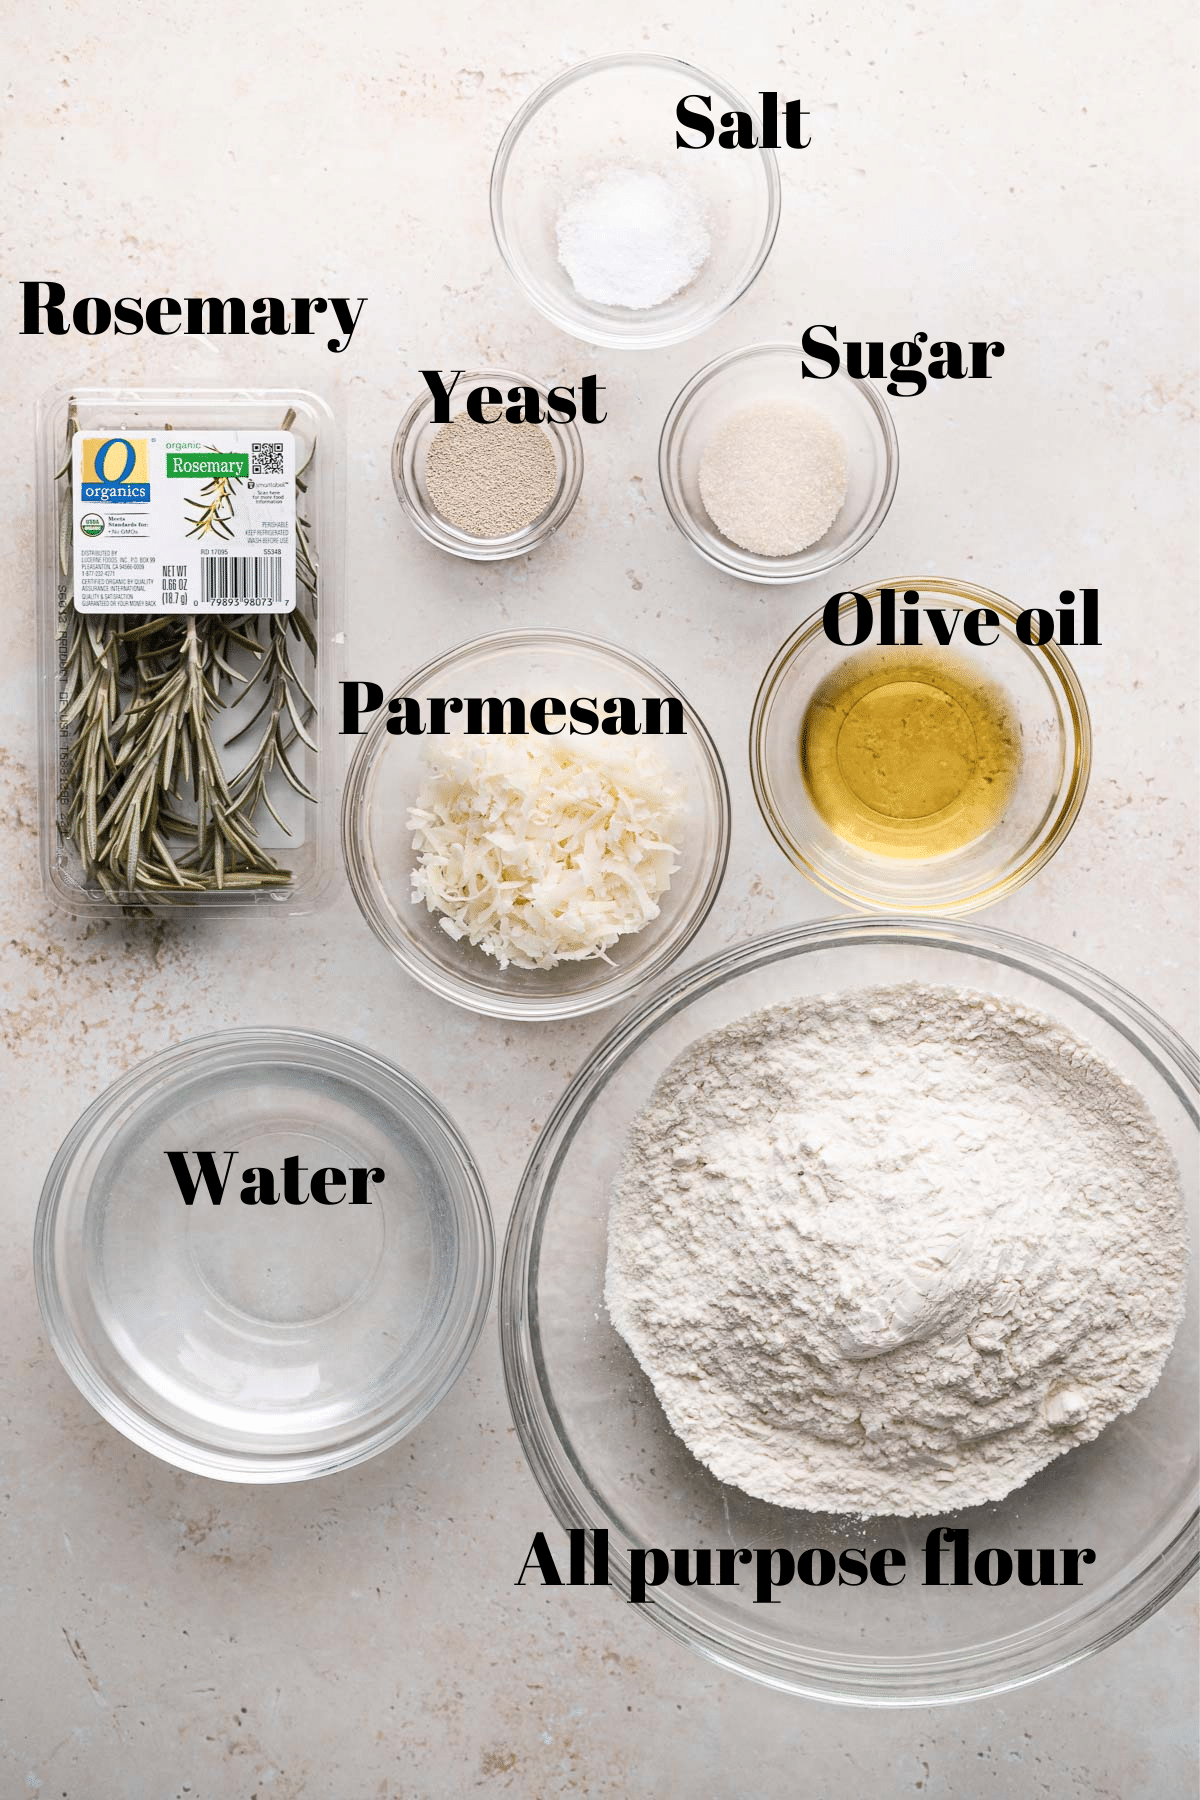 overhead shot of all of the ingredients needed for the recipe